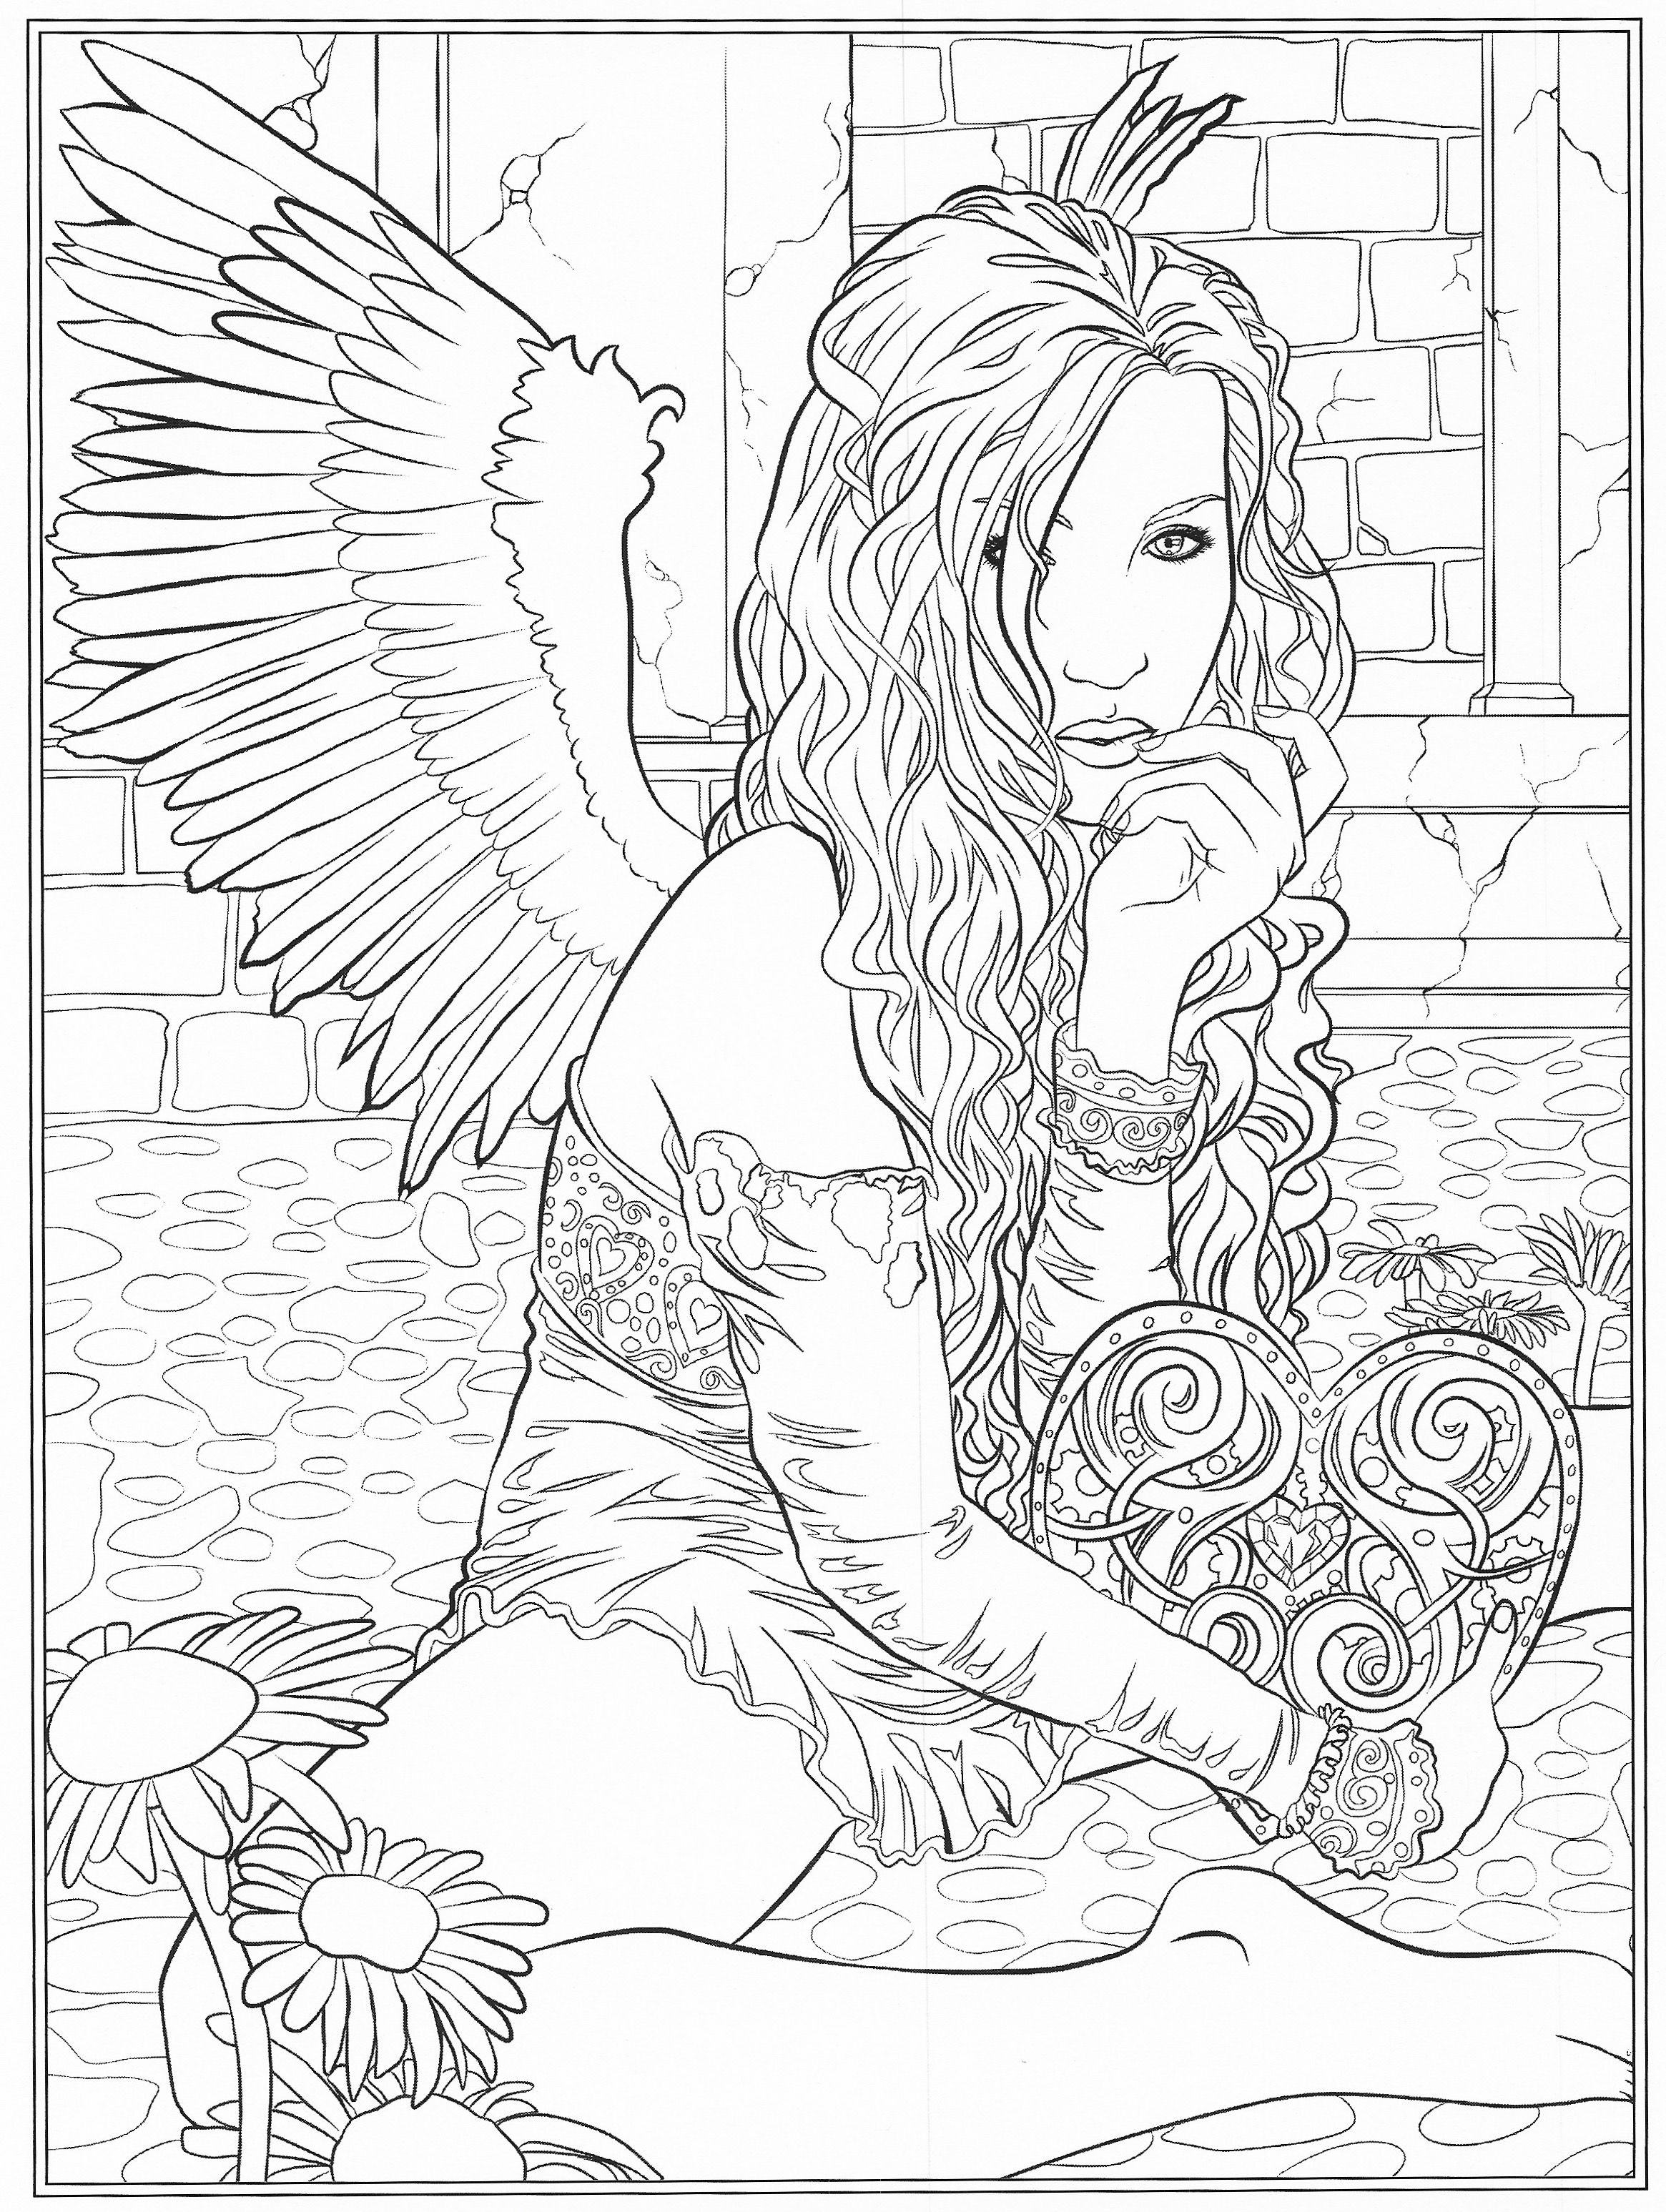 Pin By John Rielo On Coloring Pages Angel Coloring Pages Fairy Coloring Pages Coloring Pages